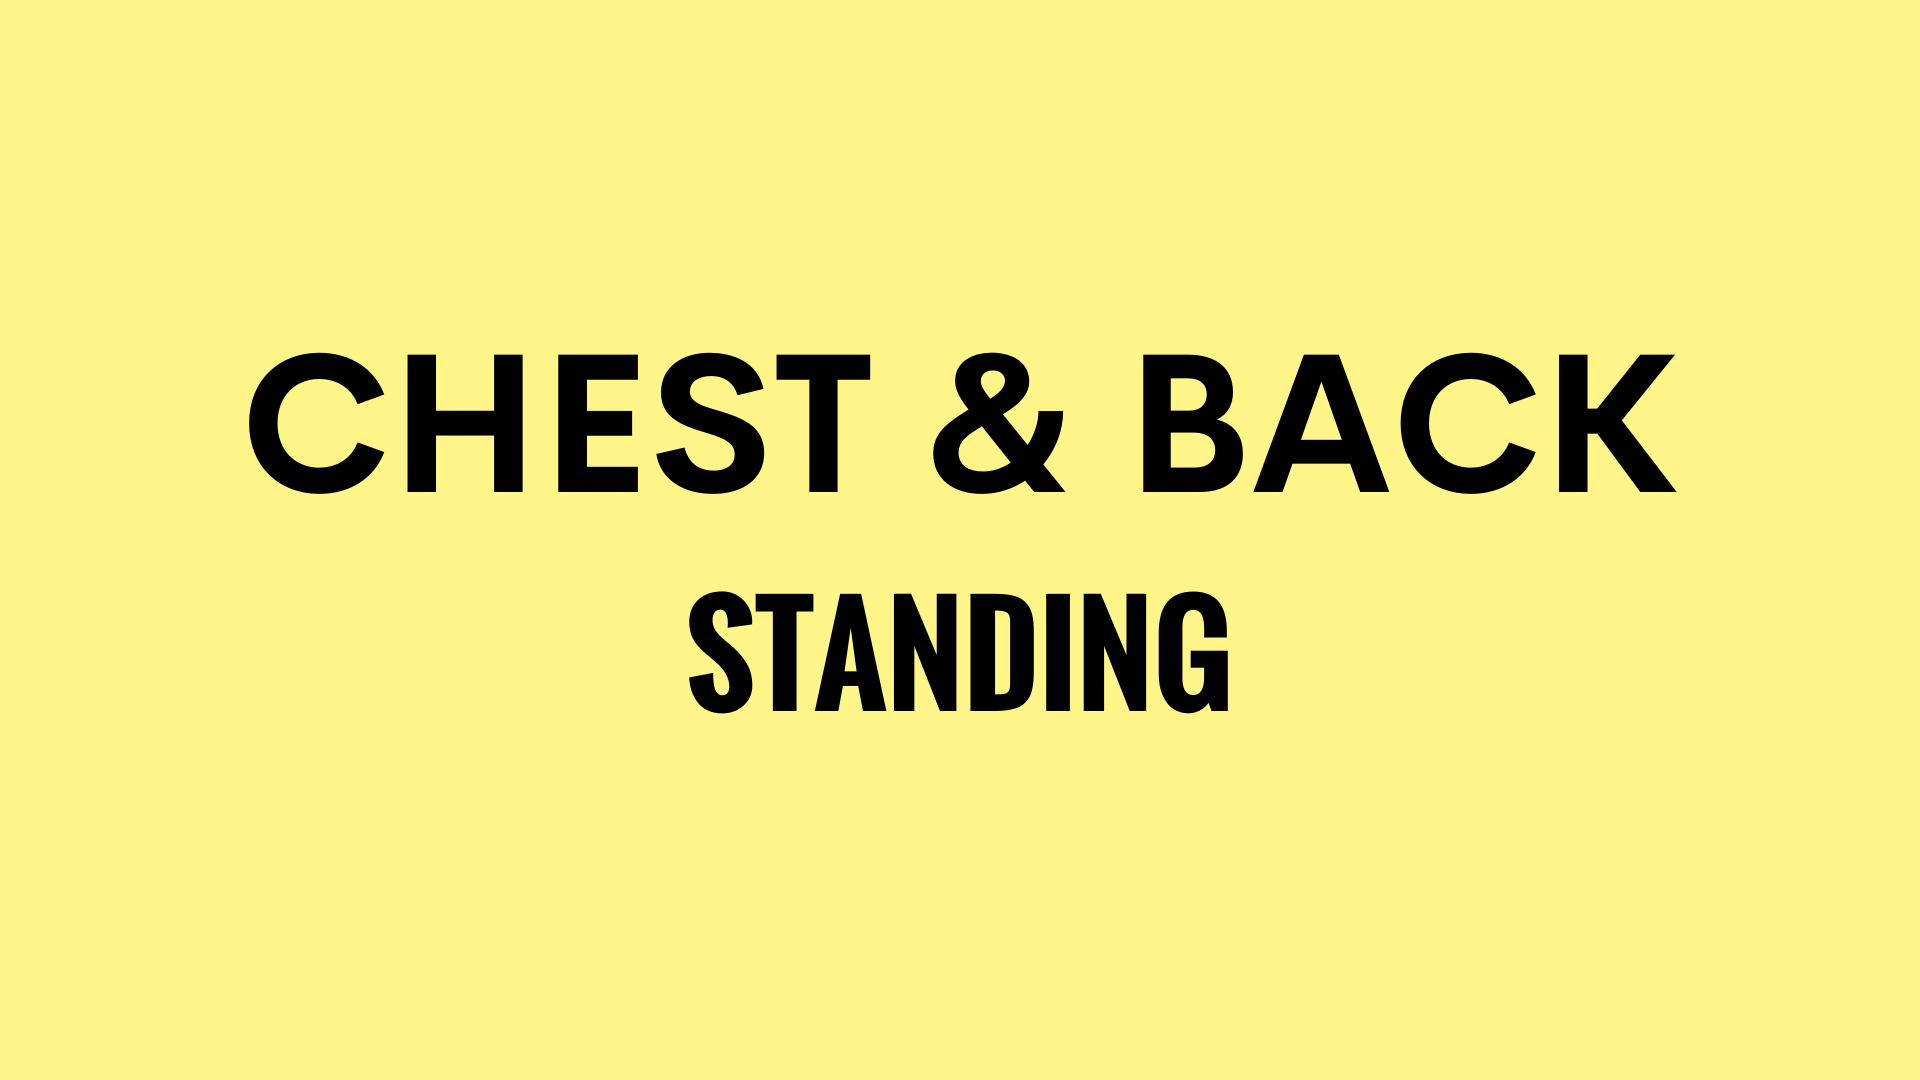 CHEST AND BACK STANDING